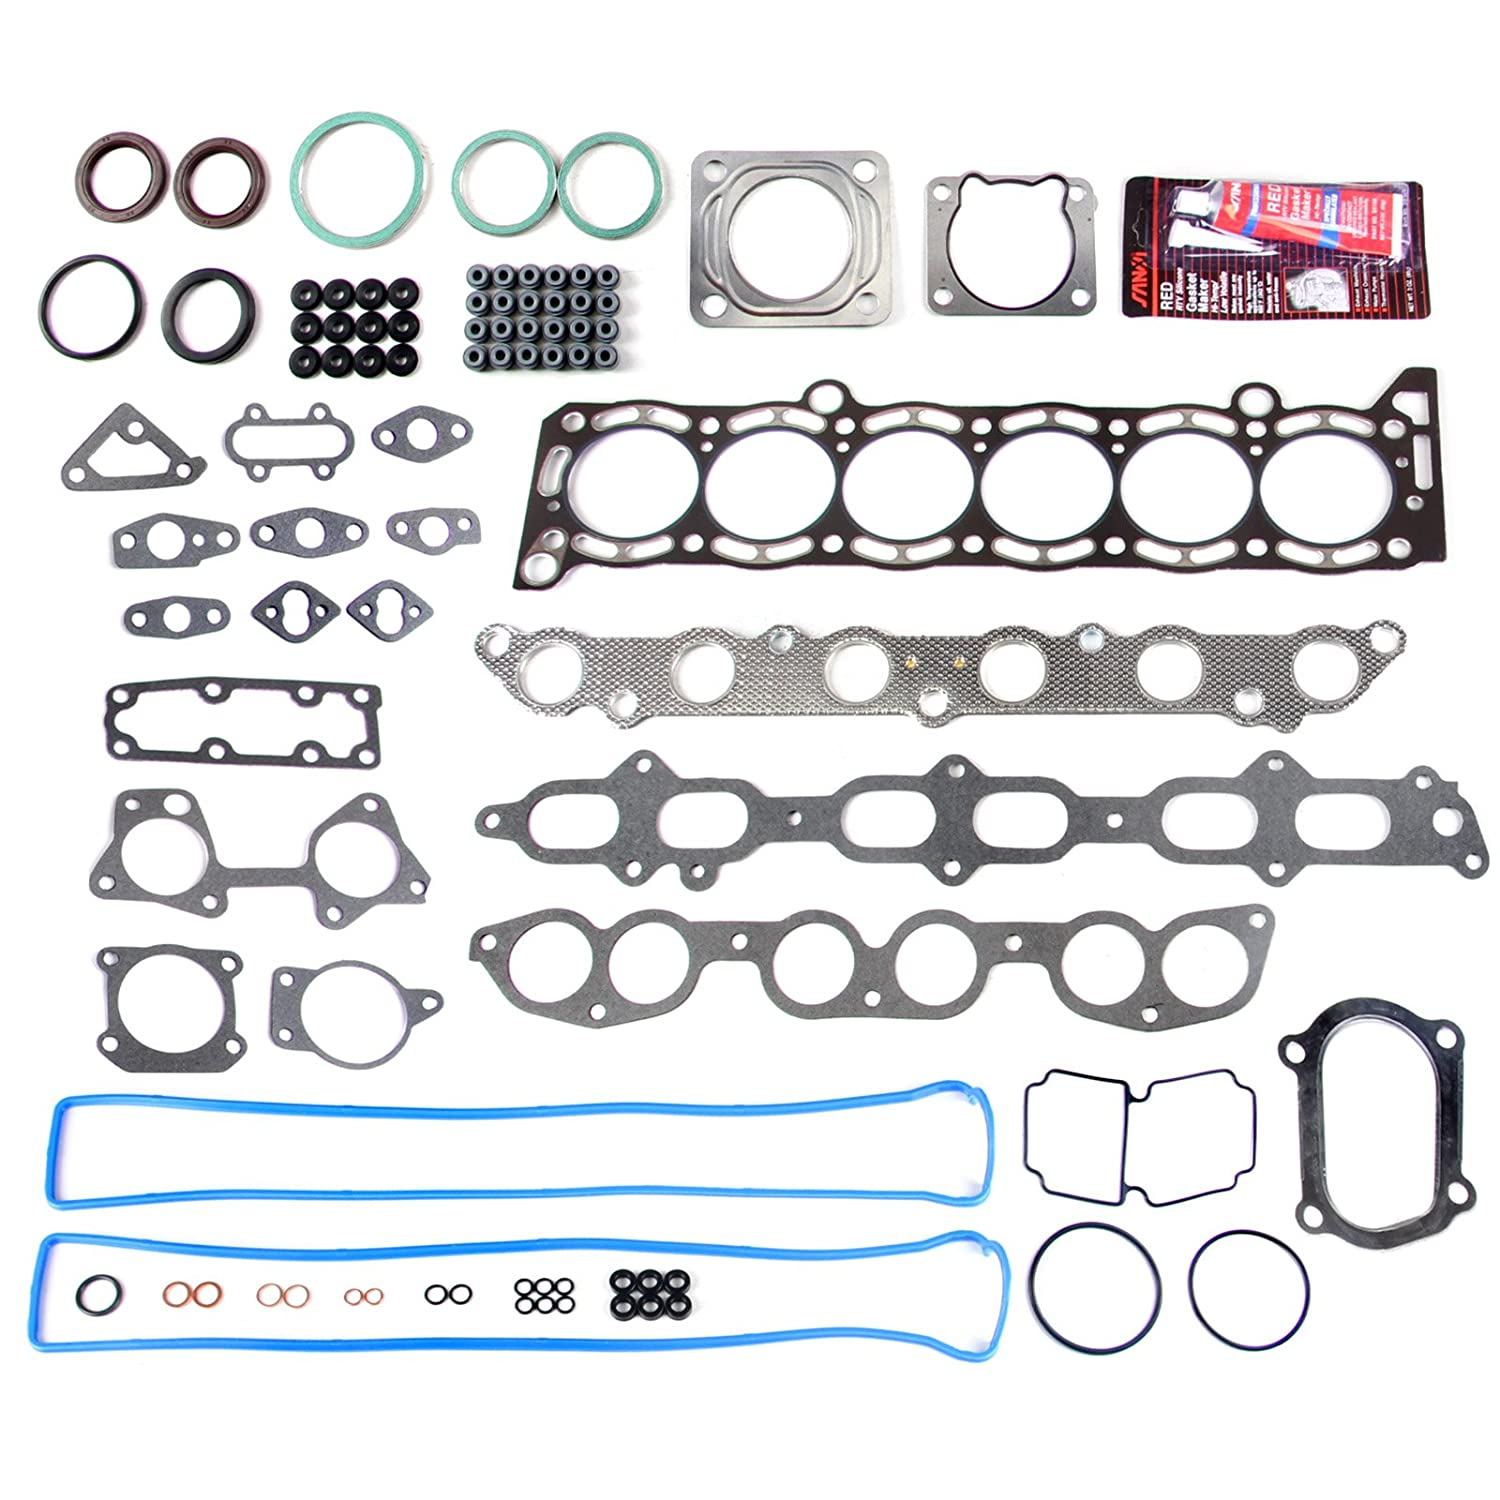 ECCPP Compatible fit for Head Gasket Set for 1986-1992 Toyota Supra 3.0L l6 DOHC 7MGE 7MGTE Automotive Replacement Engine Head Gaskets Kit 058178-5211-1744011